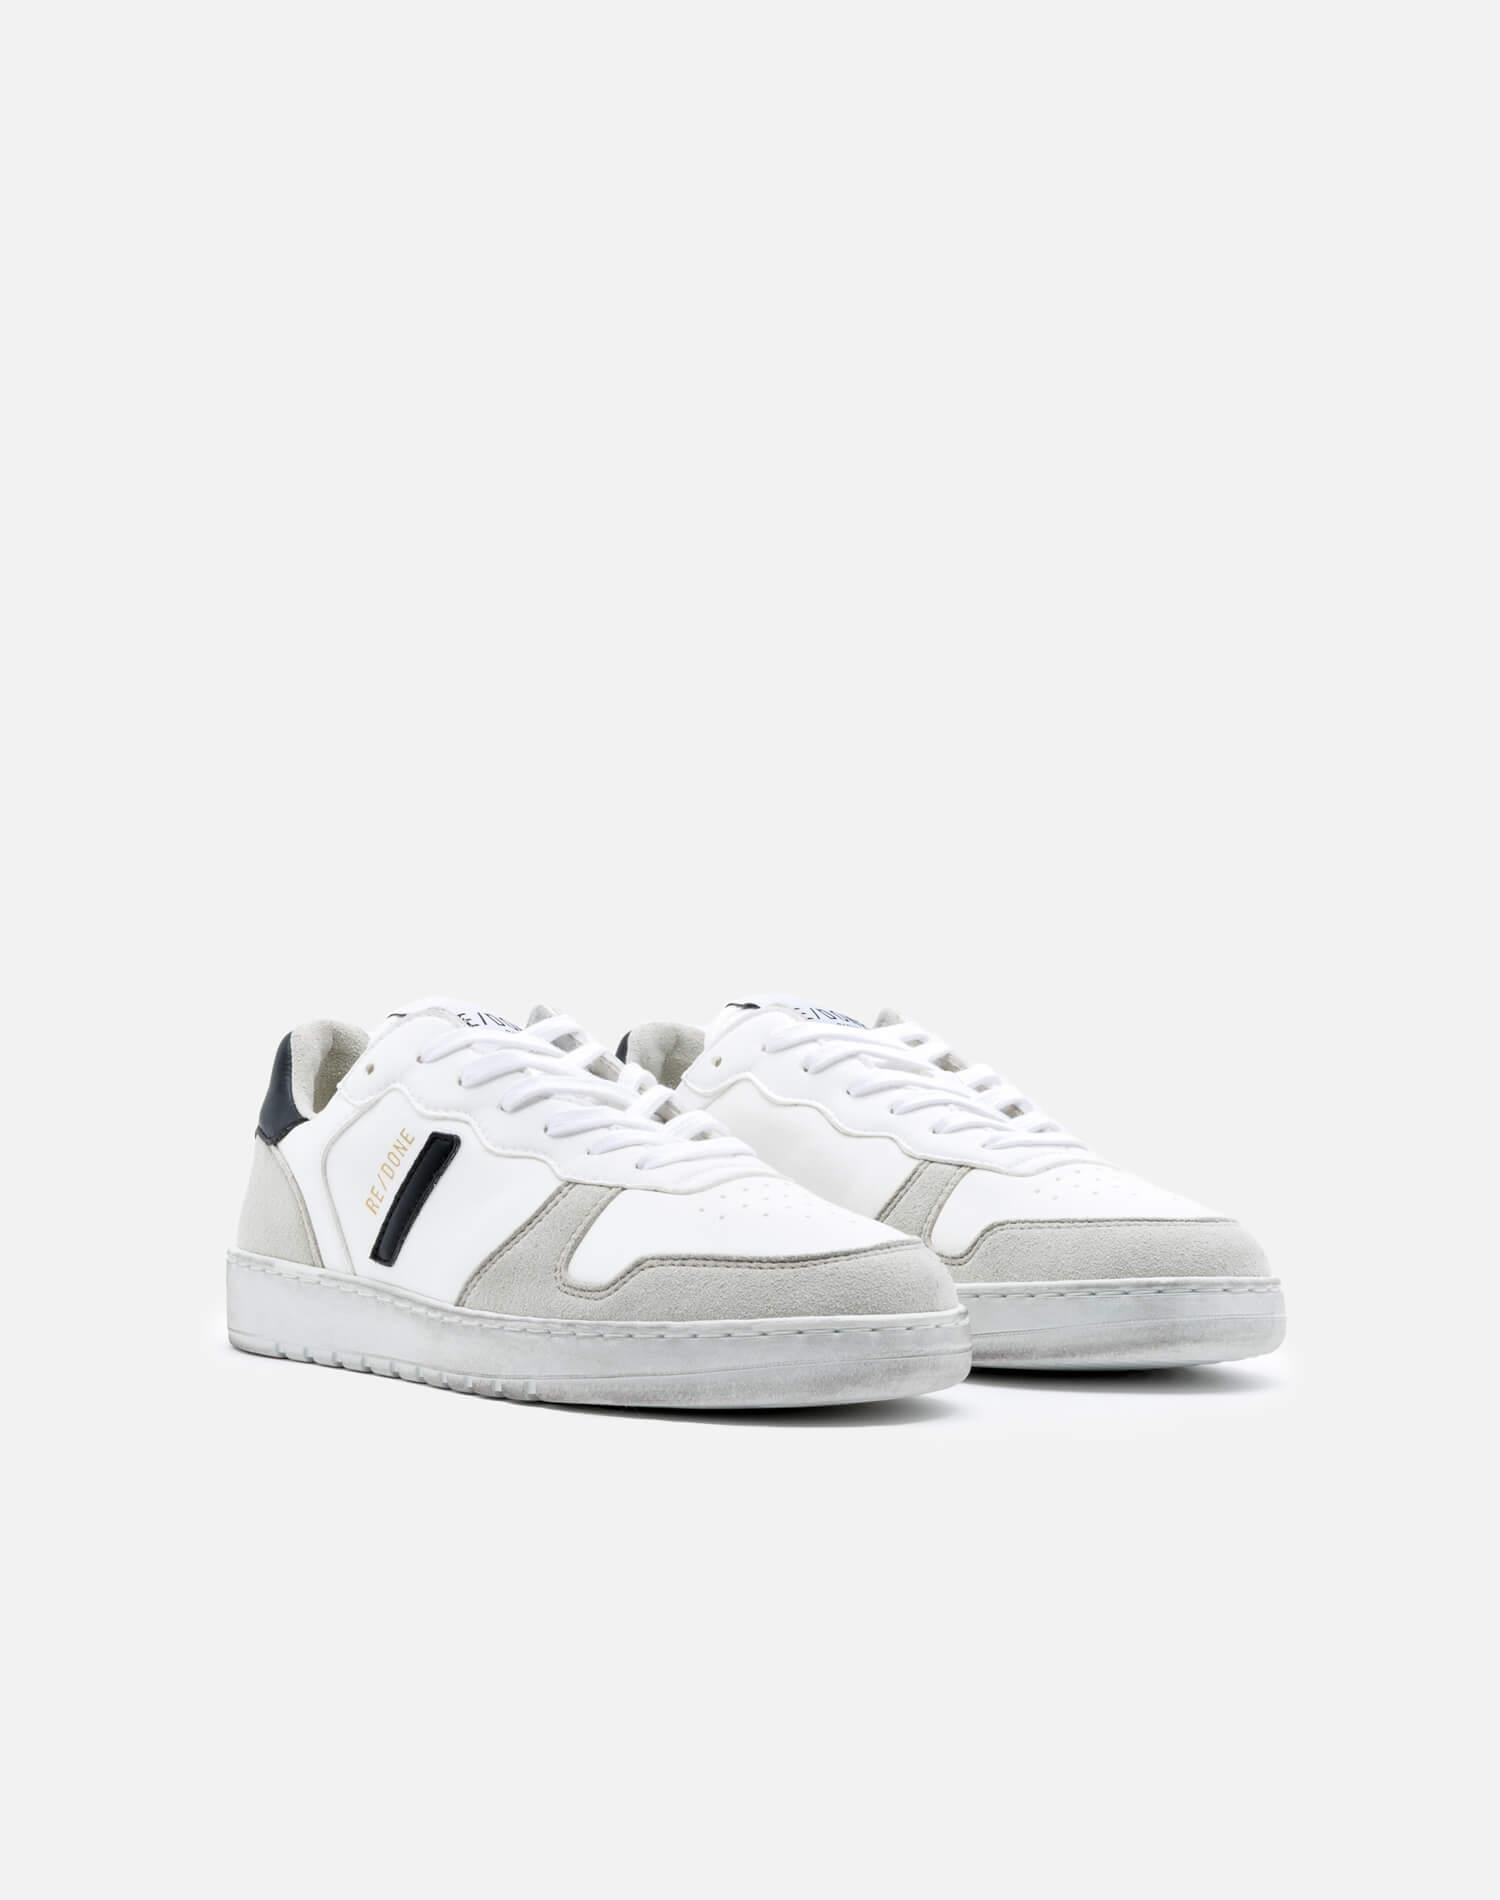 80s Sustainable Basketball Shoe - White and Black 1